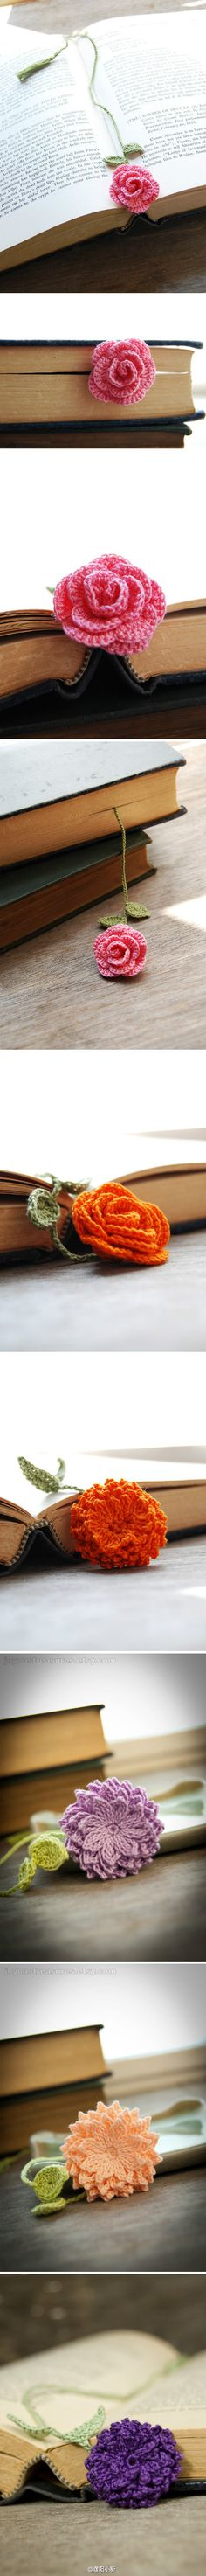 Pretty bookmarks - crochet flowers.